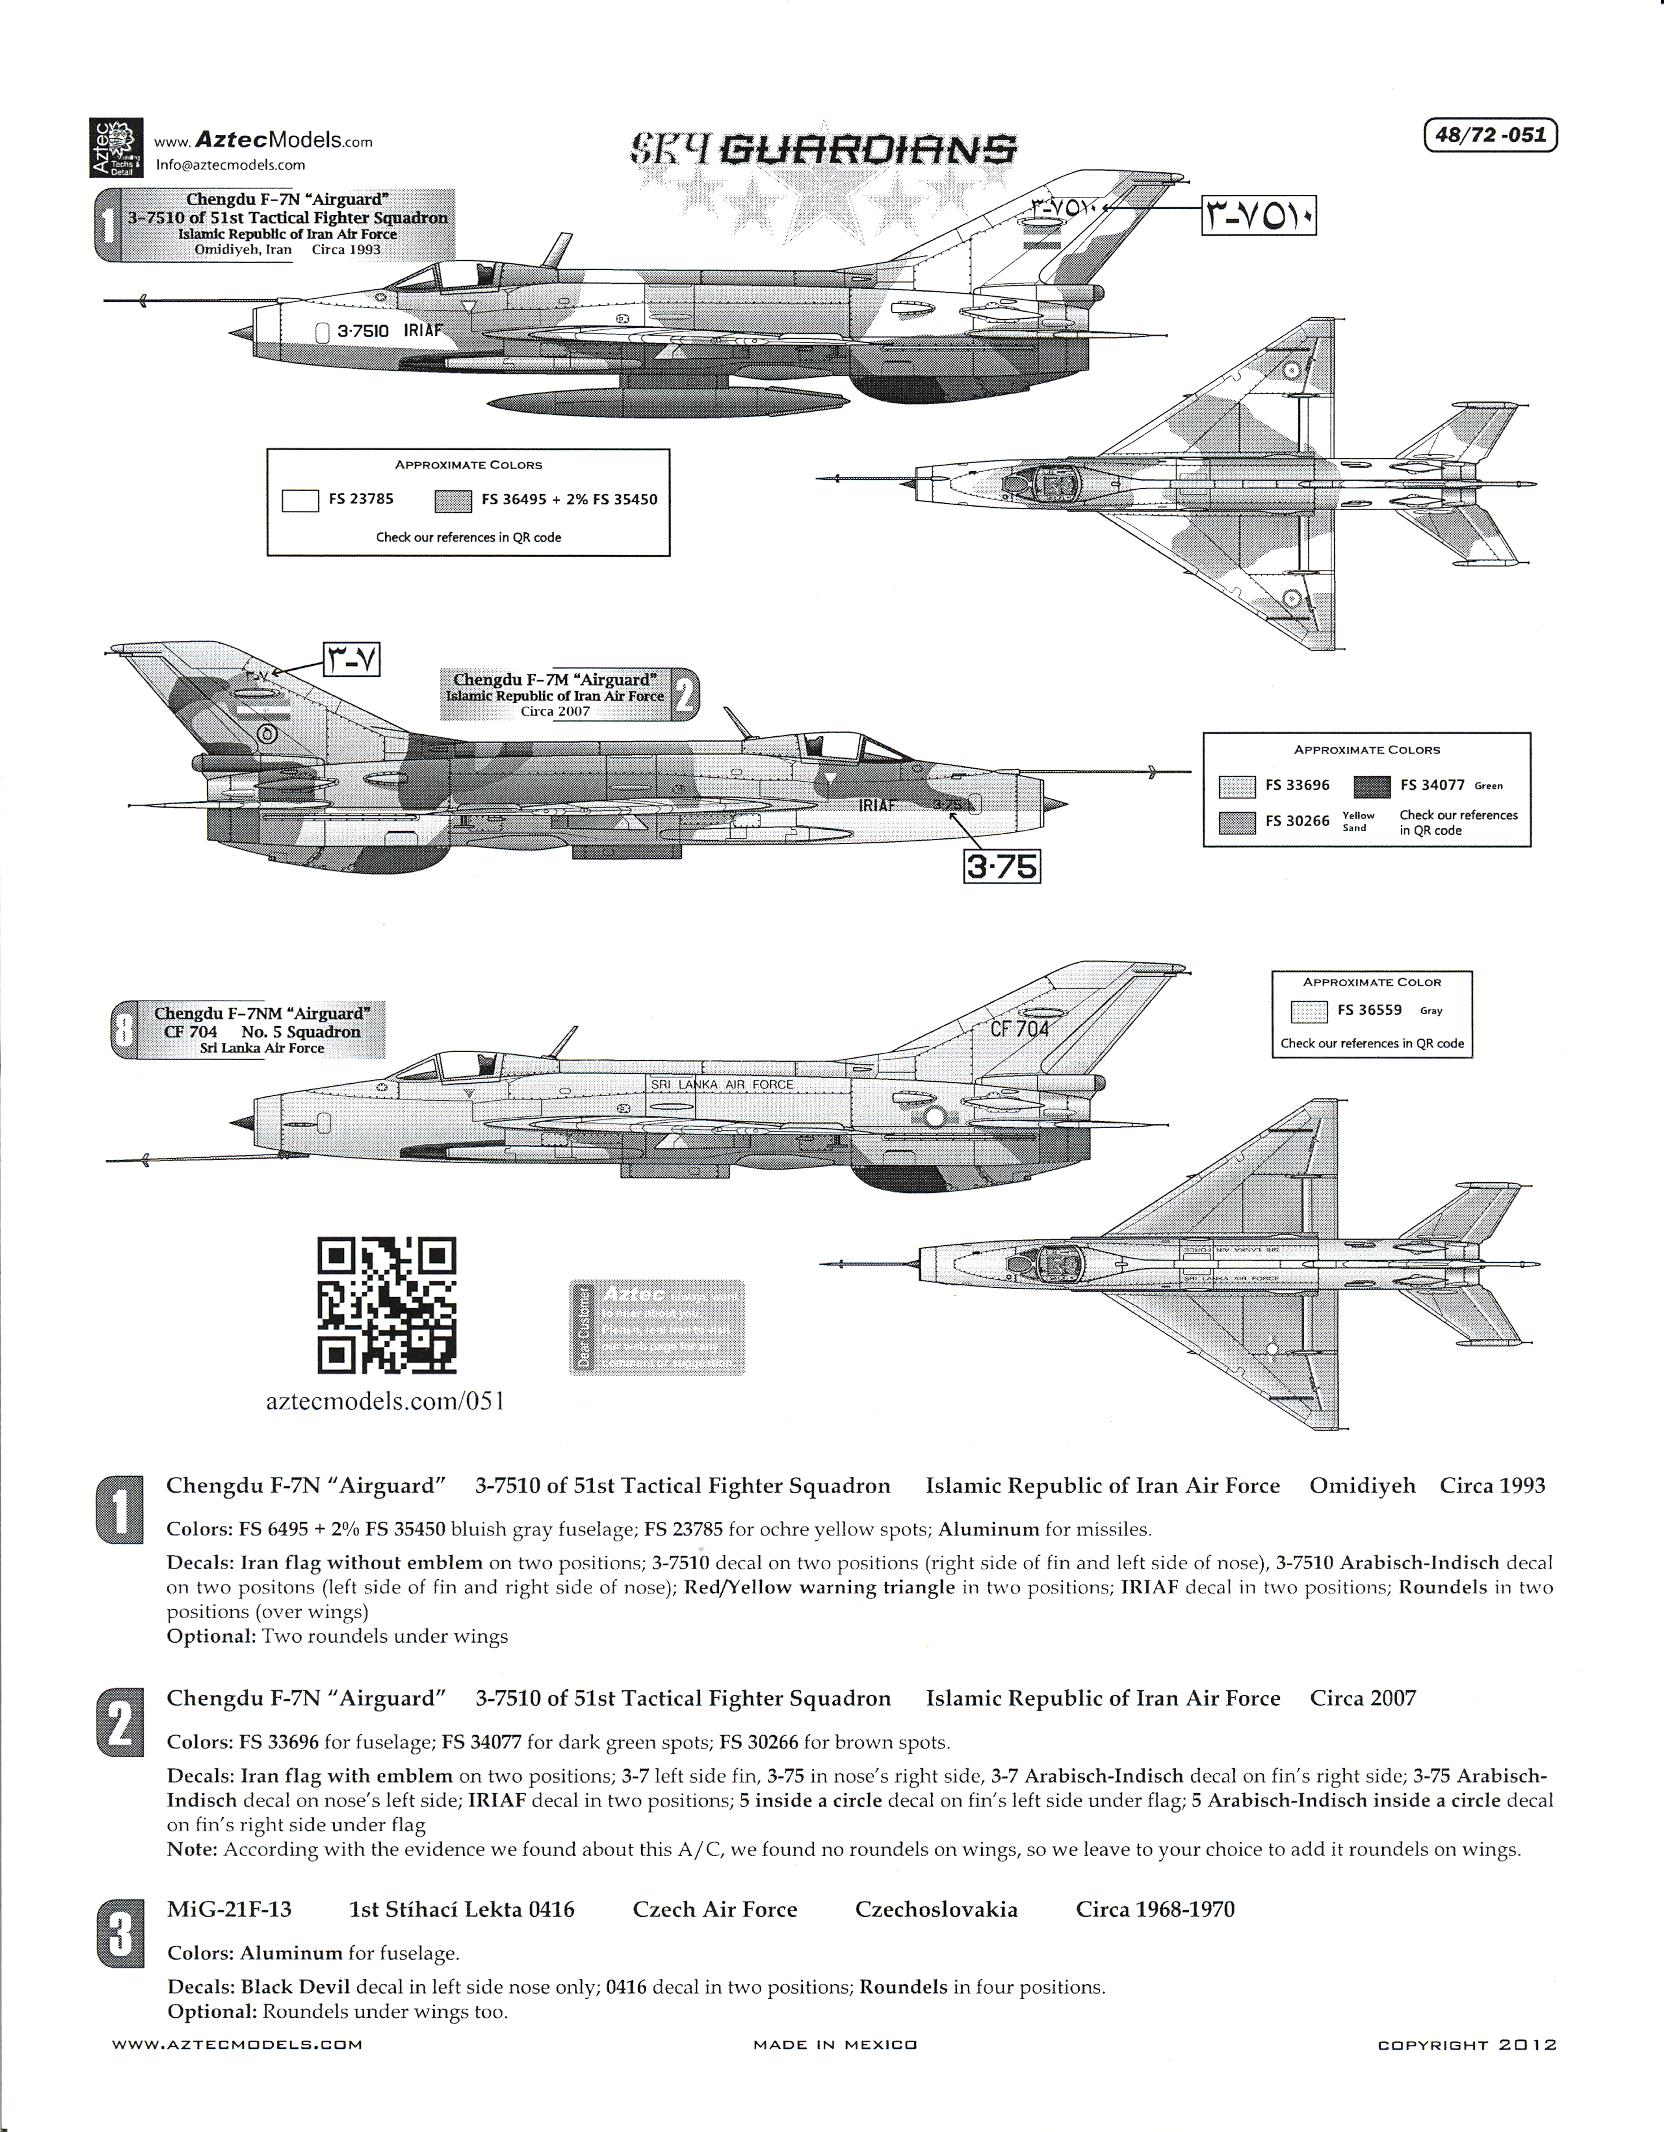 21 International Fashion Magazine You Ll Love: Aztec Decals 1/72 SKY GUARDIANS MIKOYAN MiG-21 In